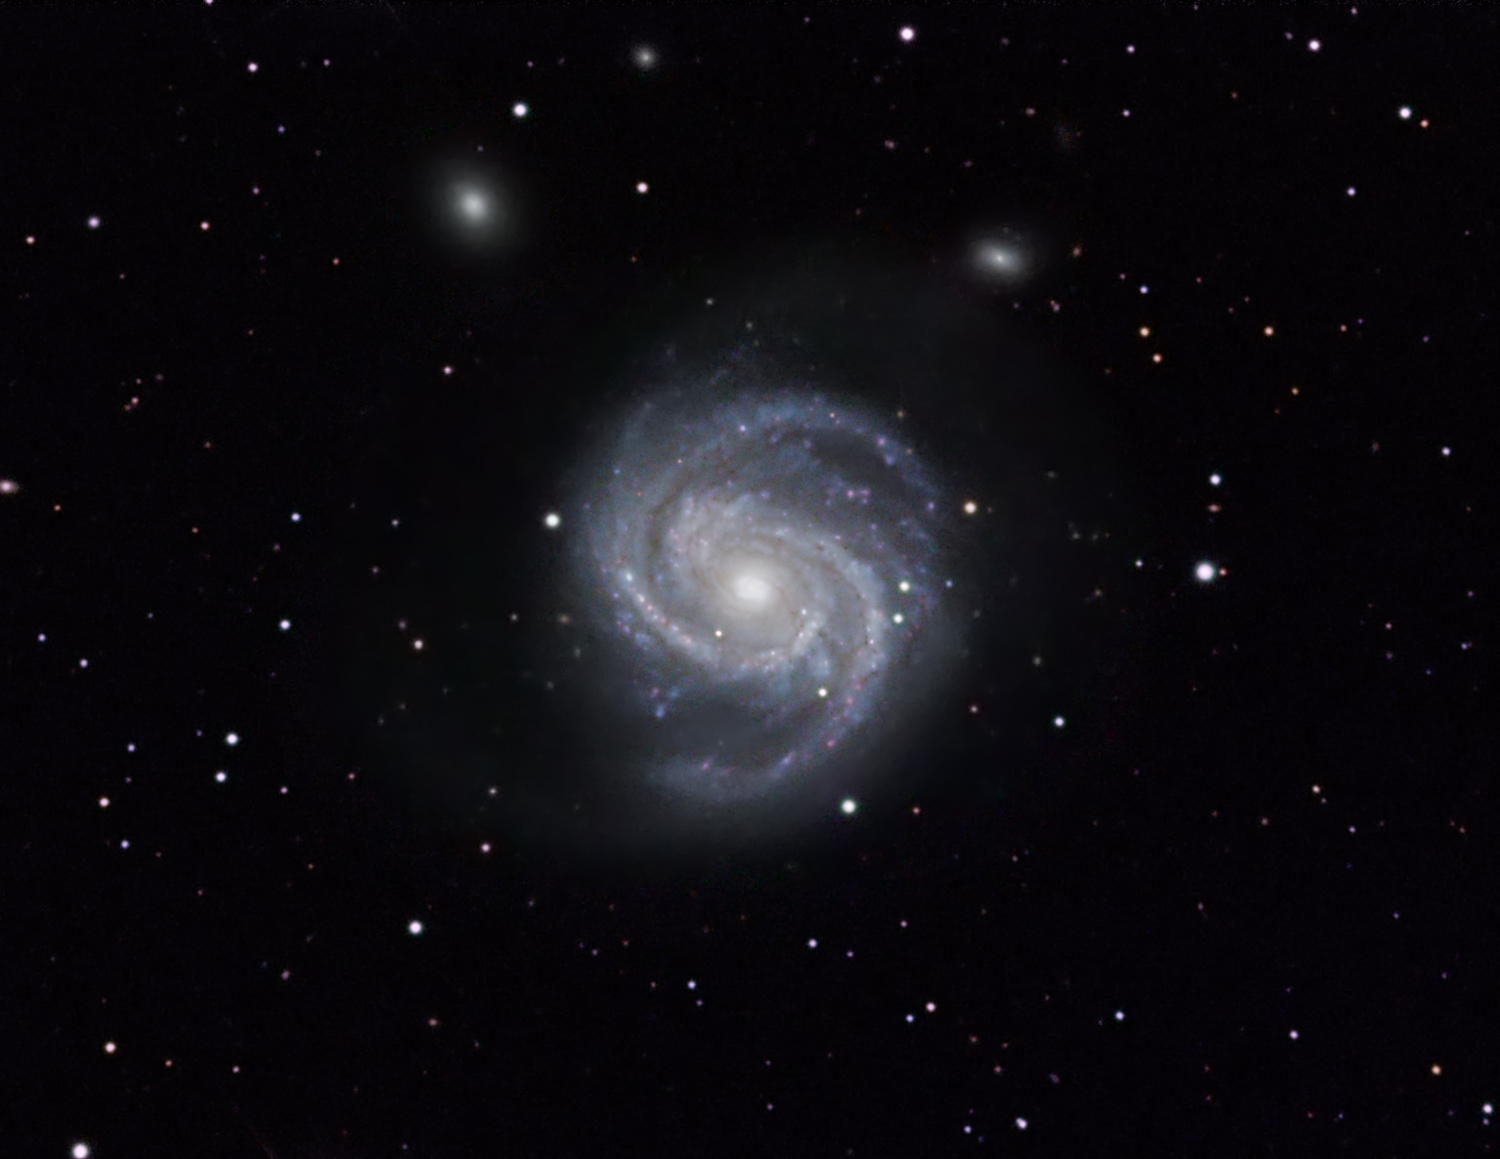 M100 Imaged by Wade Van Arsdale